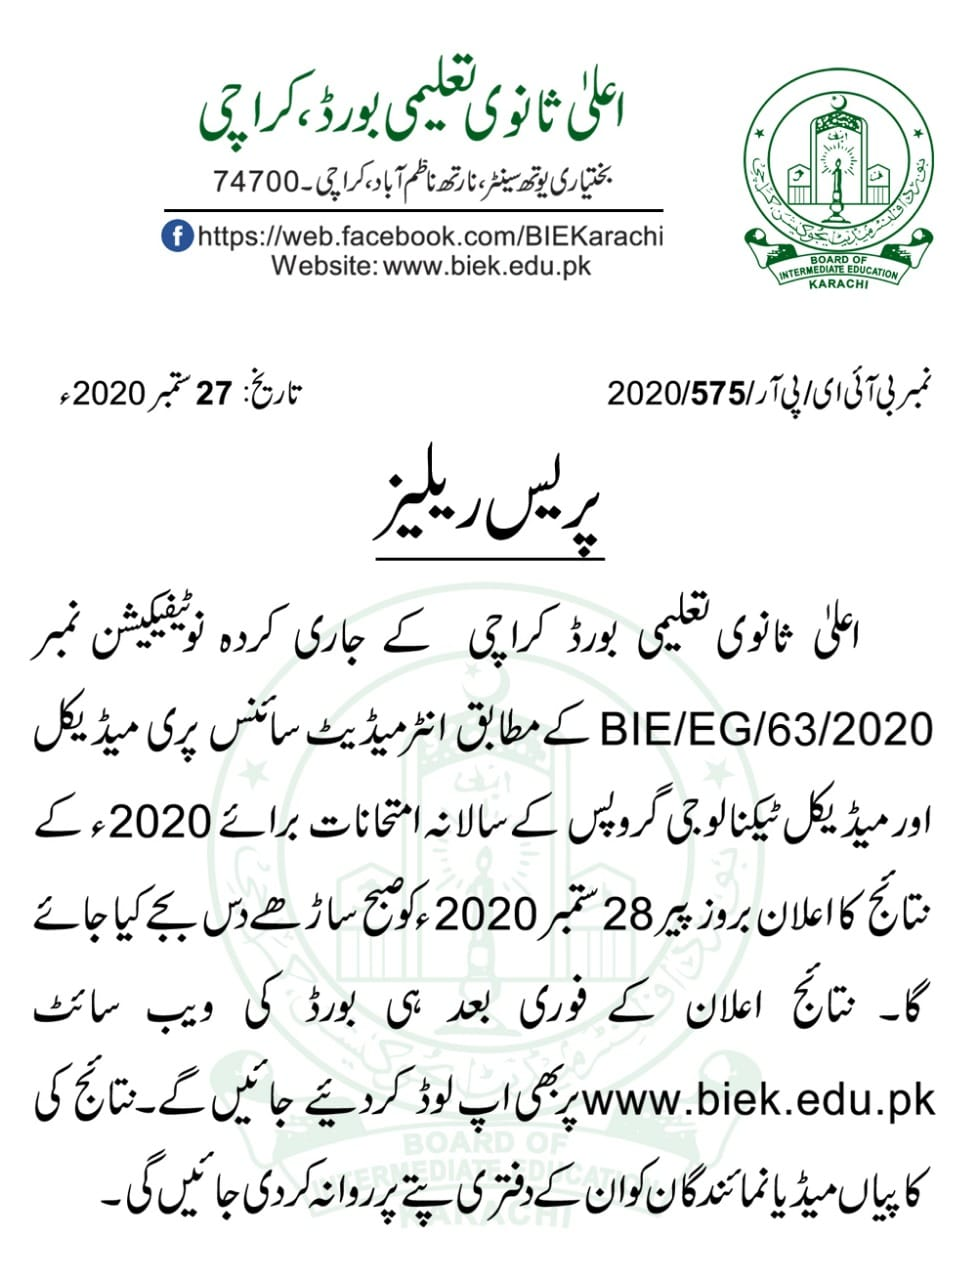 How to Check Online Result 2020 B.I.E Karachi